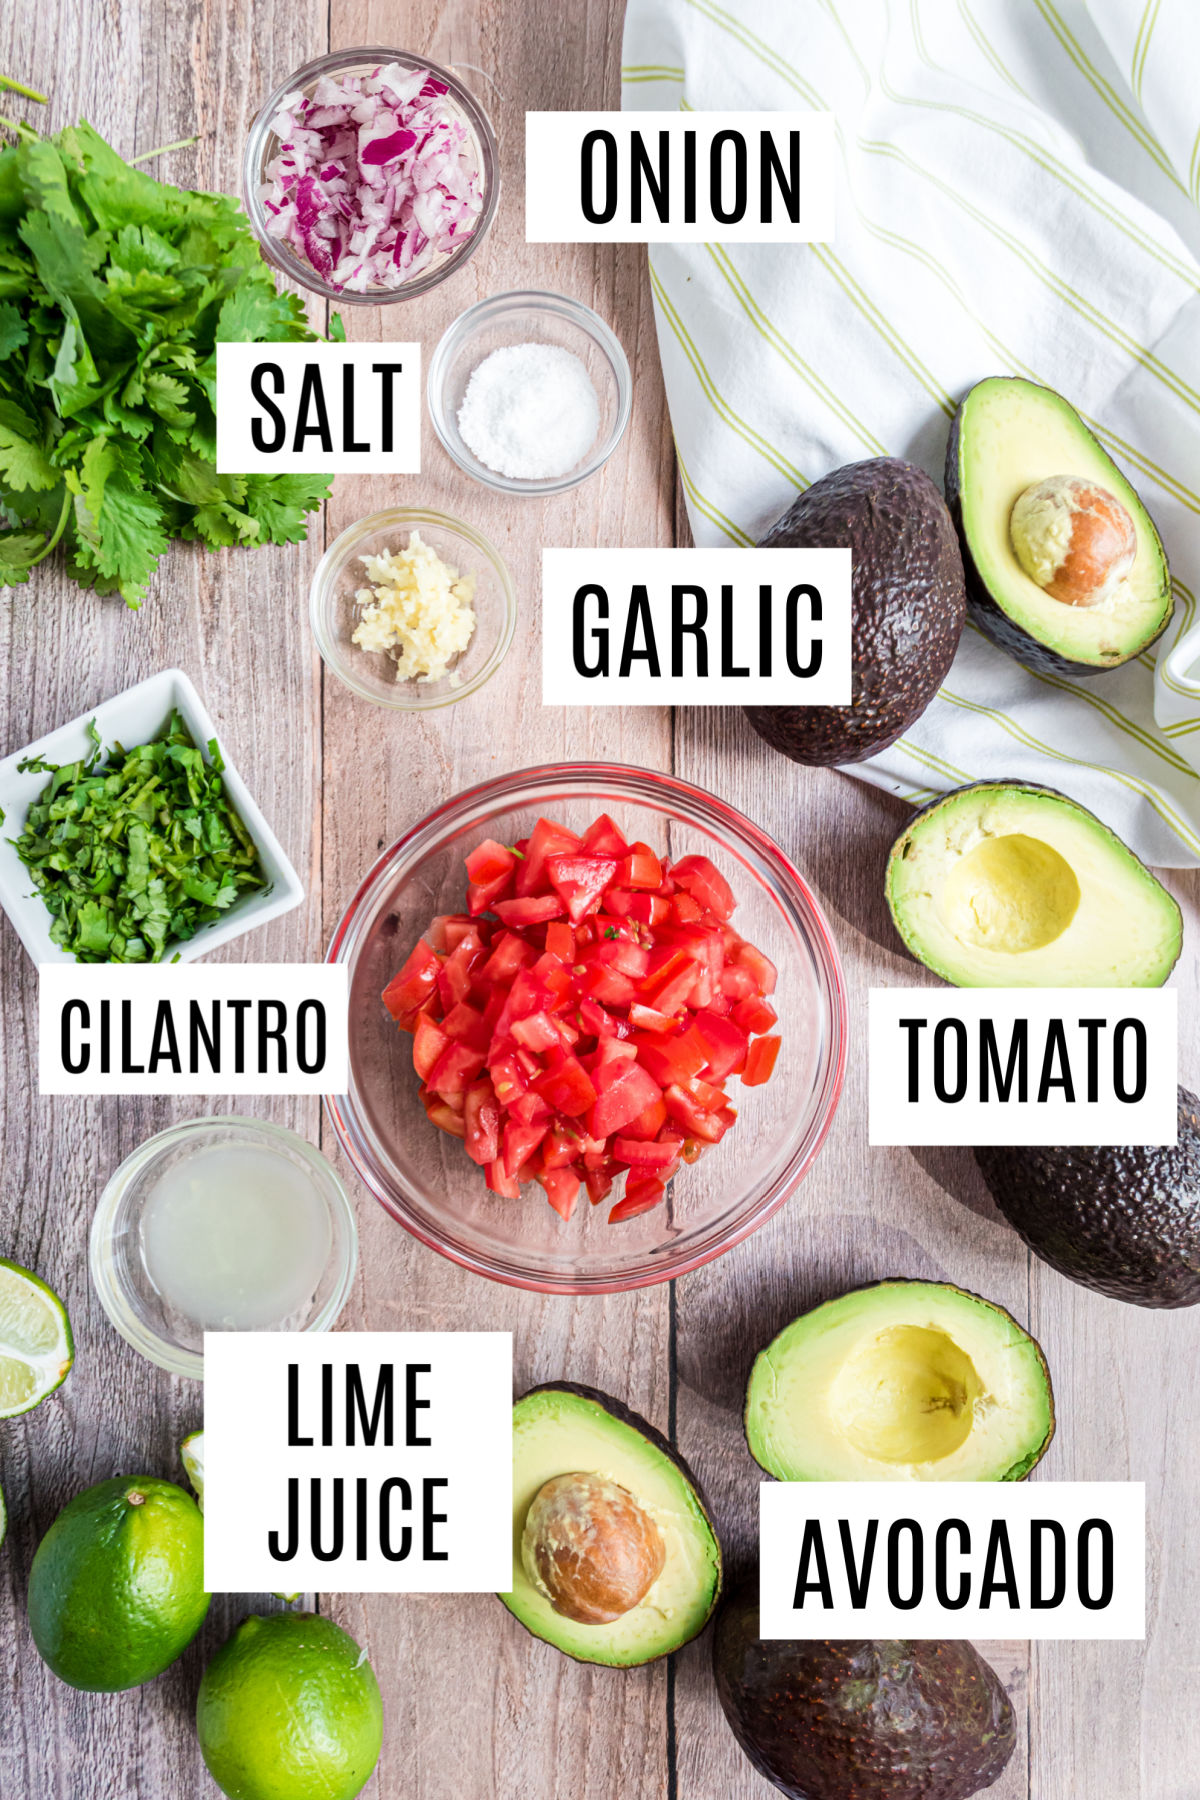 Ingredients needed for homemade guacamole recipe.